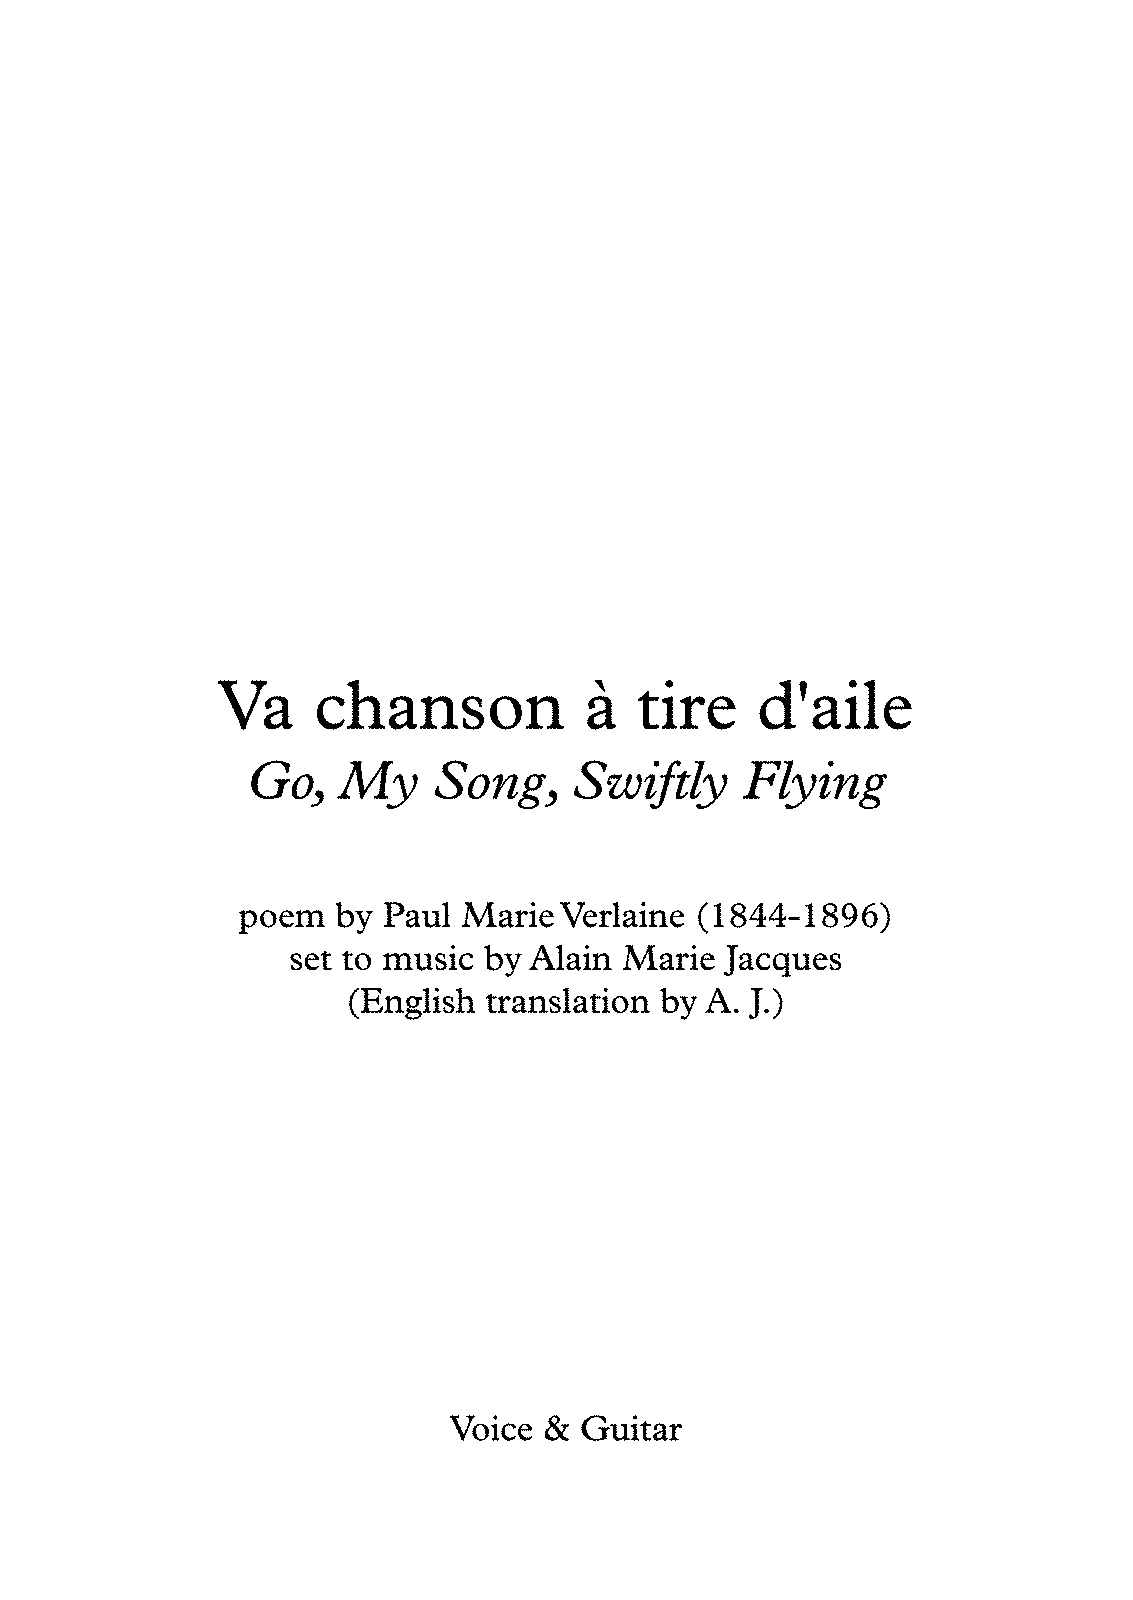 PMLP452070-Va chanson à tire d'aile in C - Full Score.pdf